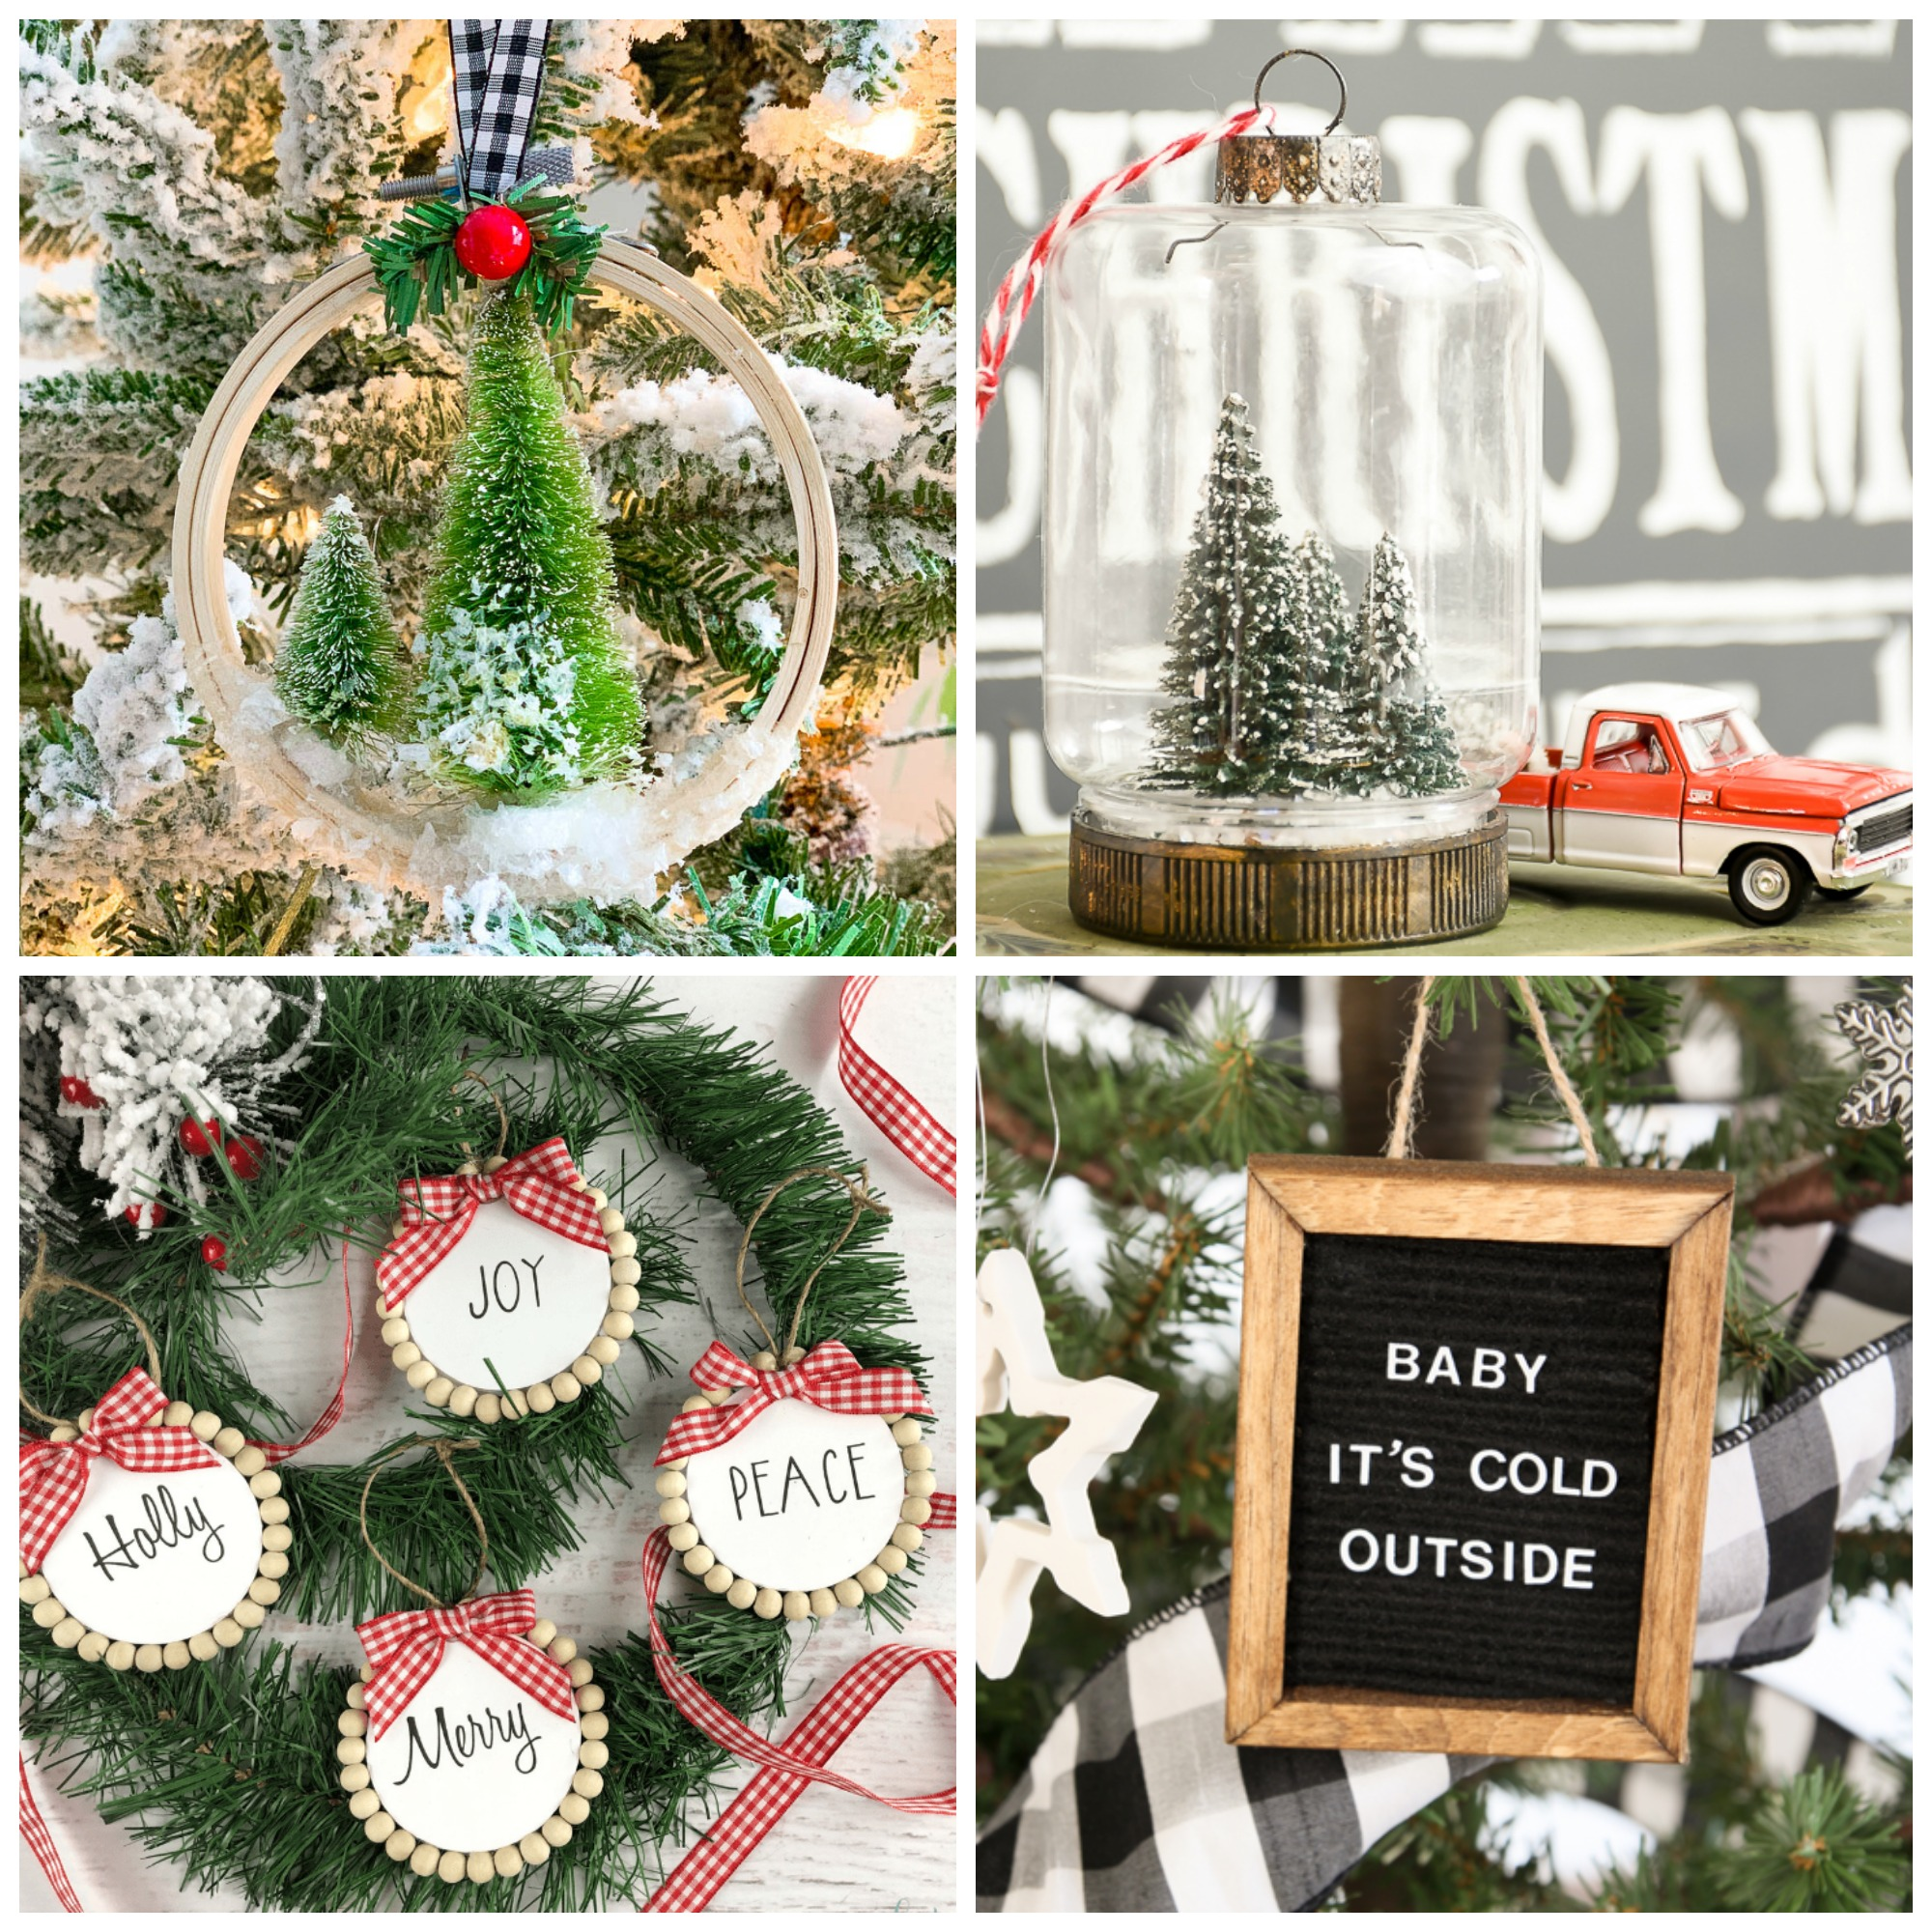 DIY Christmas Tree Ornament Craft Ideas - Fox Hollow Cottage